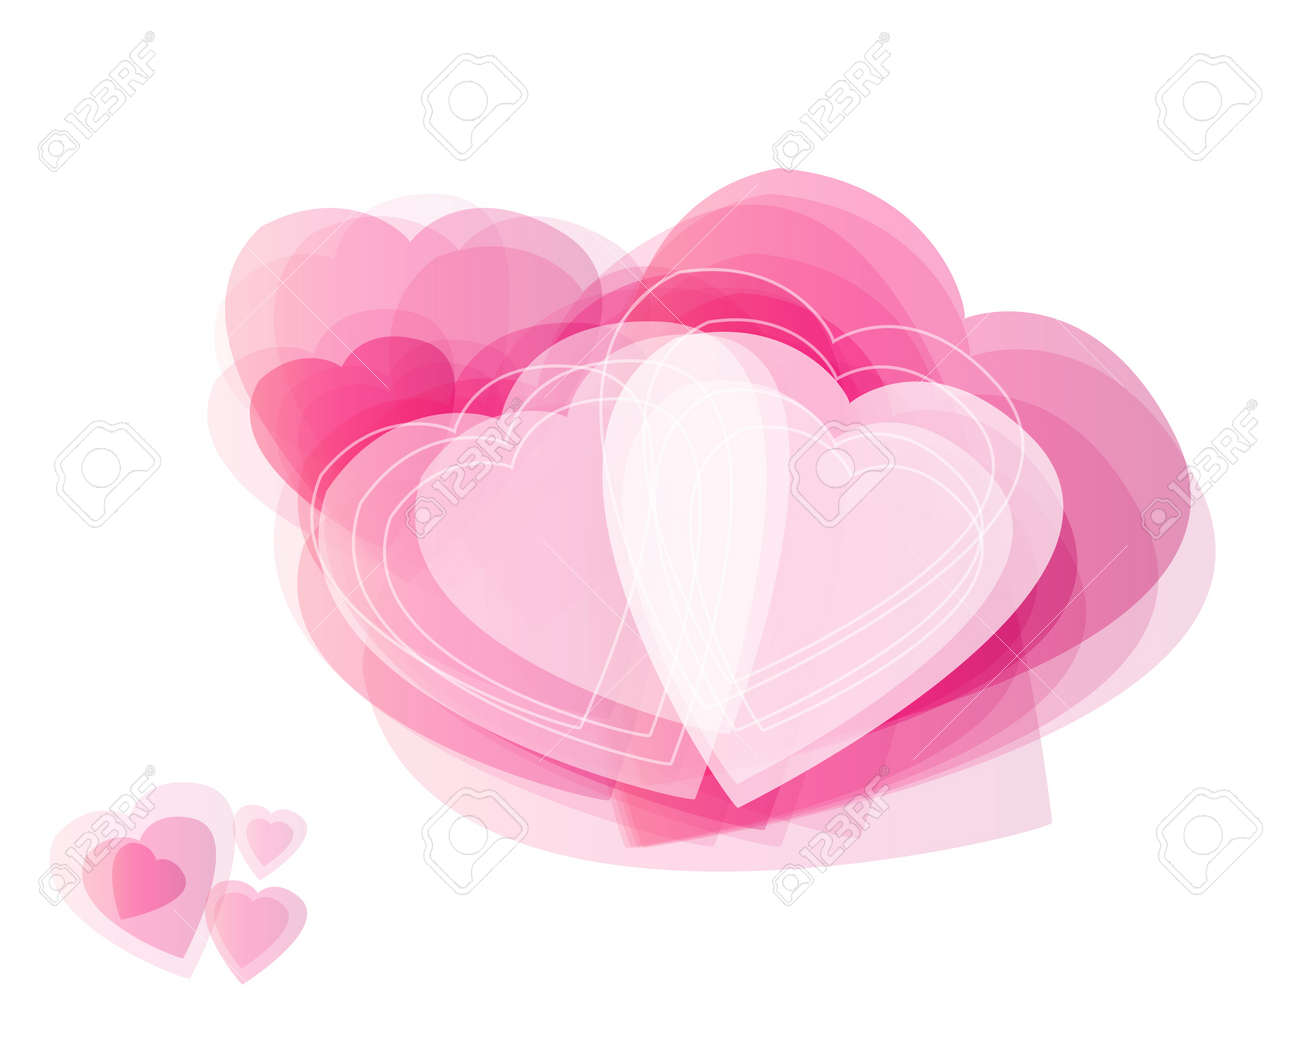 Different abstract hearts for valentines day on white background. Stock Photo - 17109416